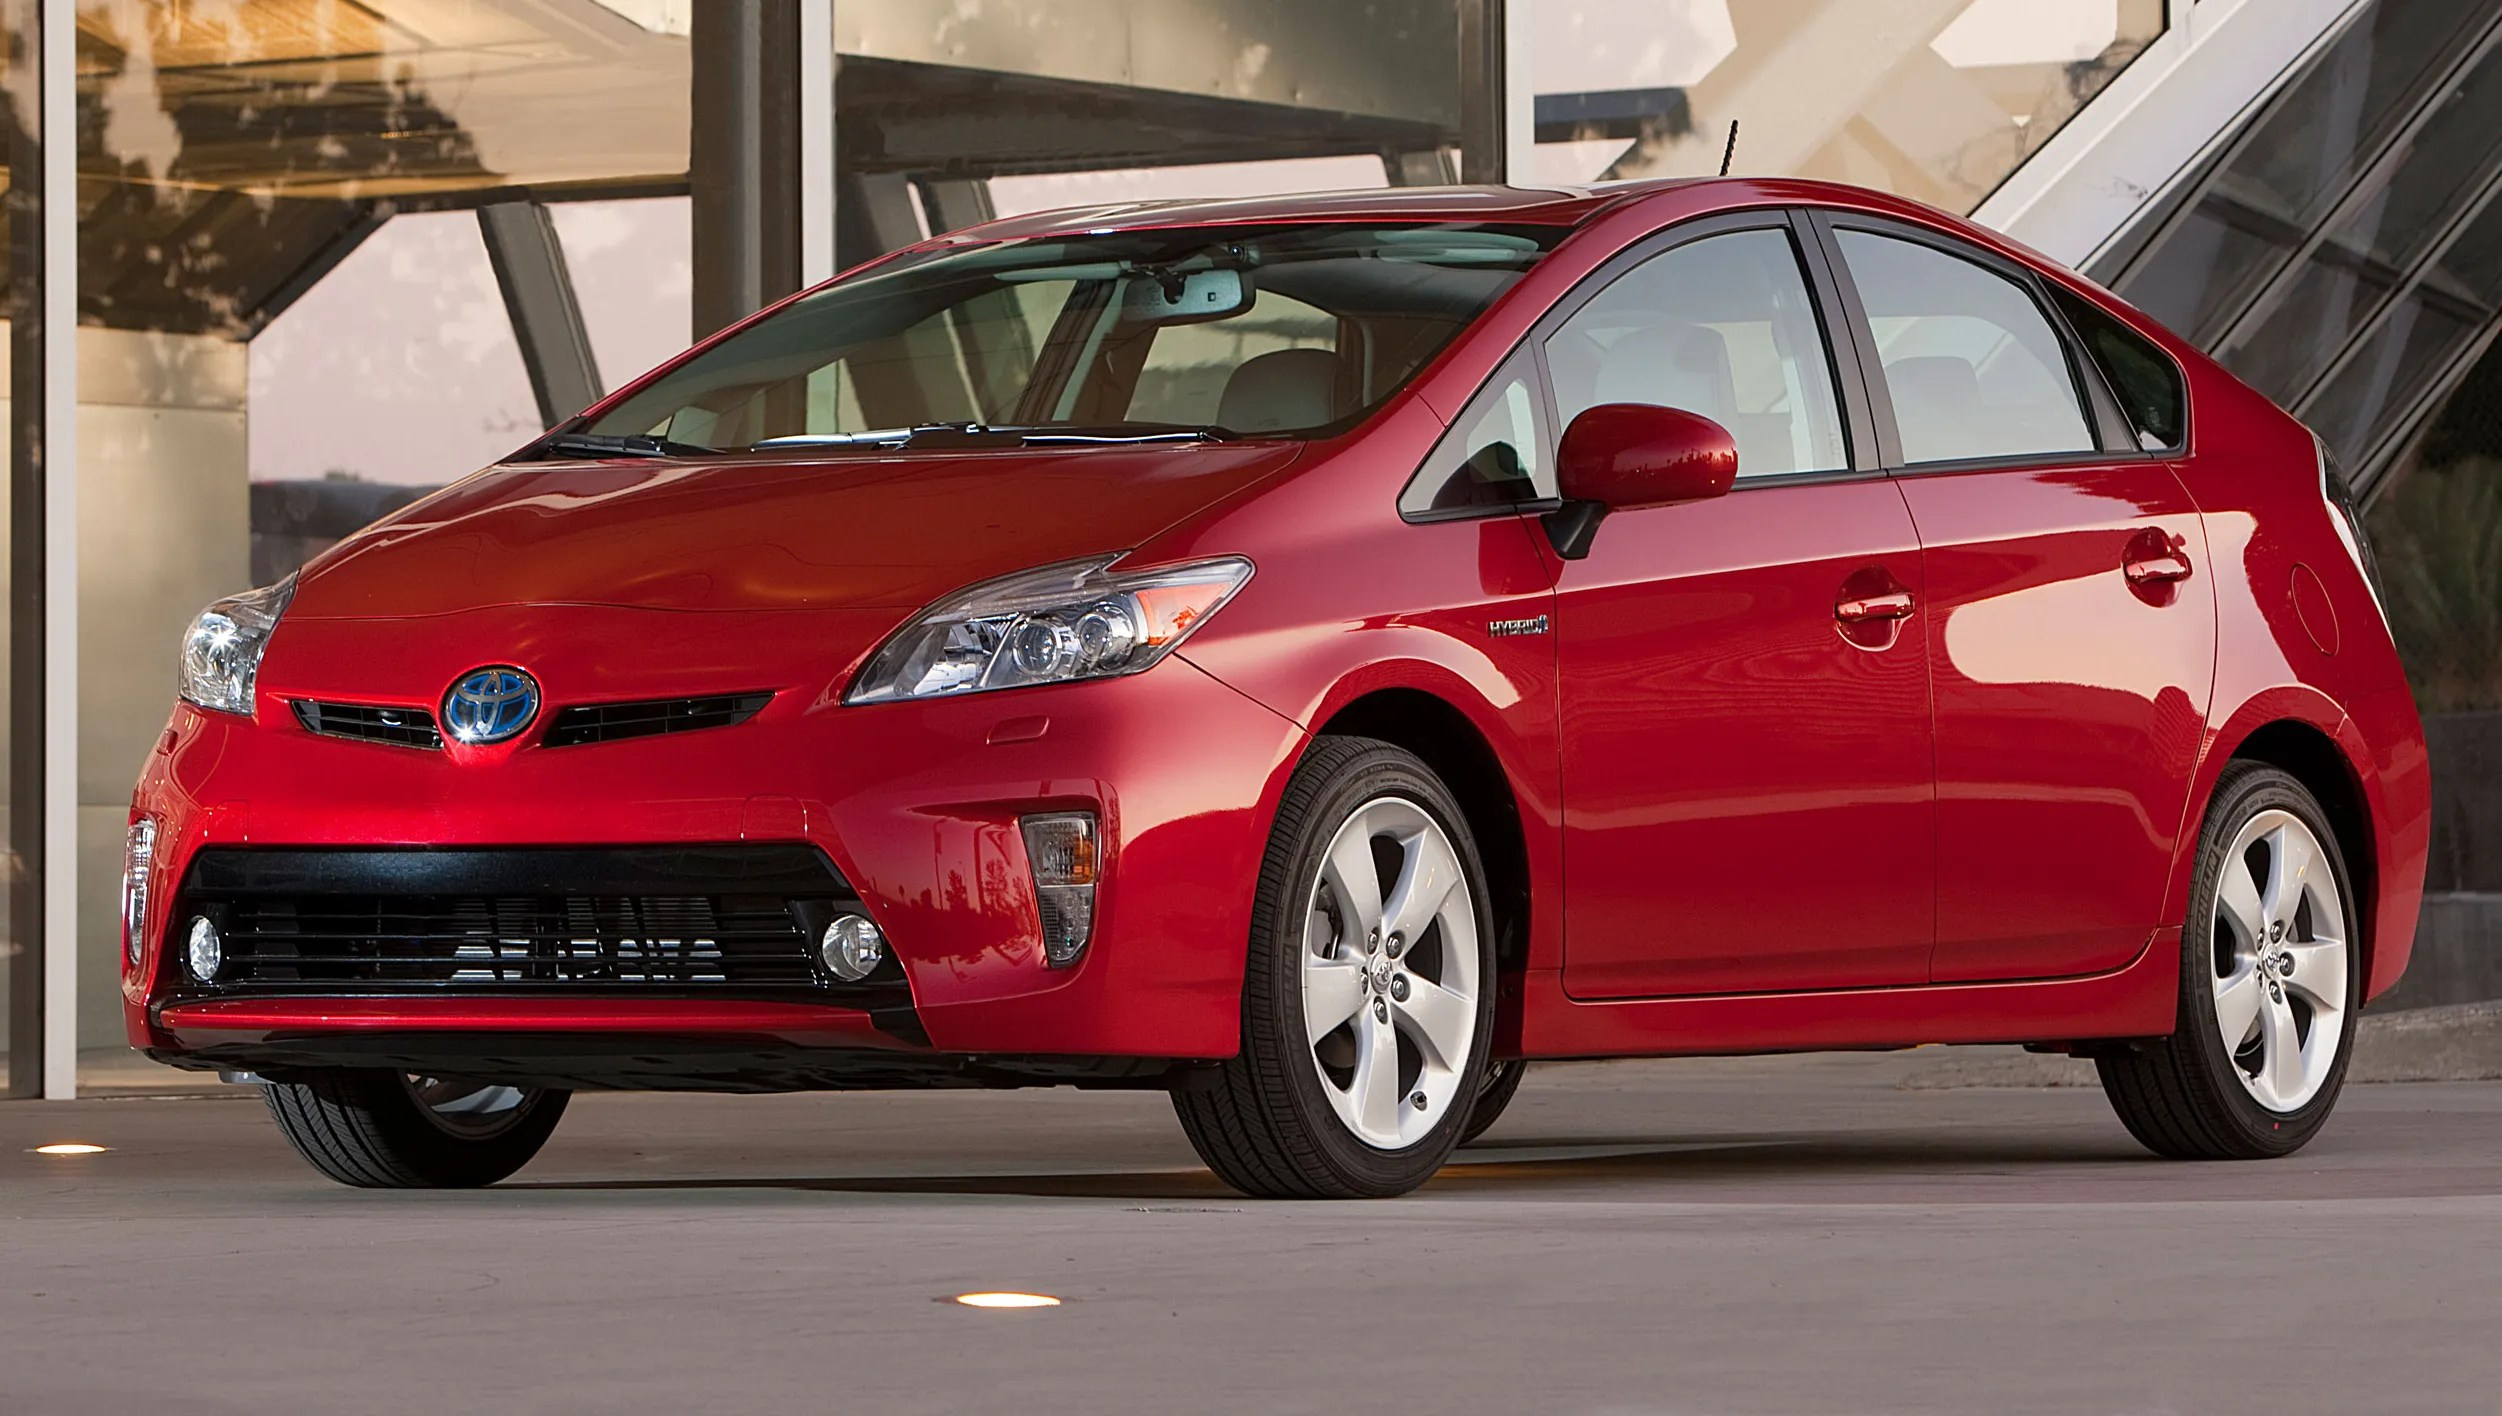 Though it is the first try, however, it received big success. Toyota Recalls 2 4m Prius Hybrid Cars That Could Stall